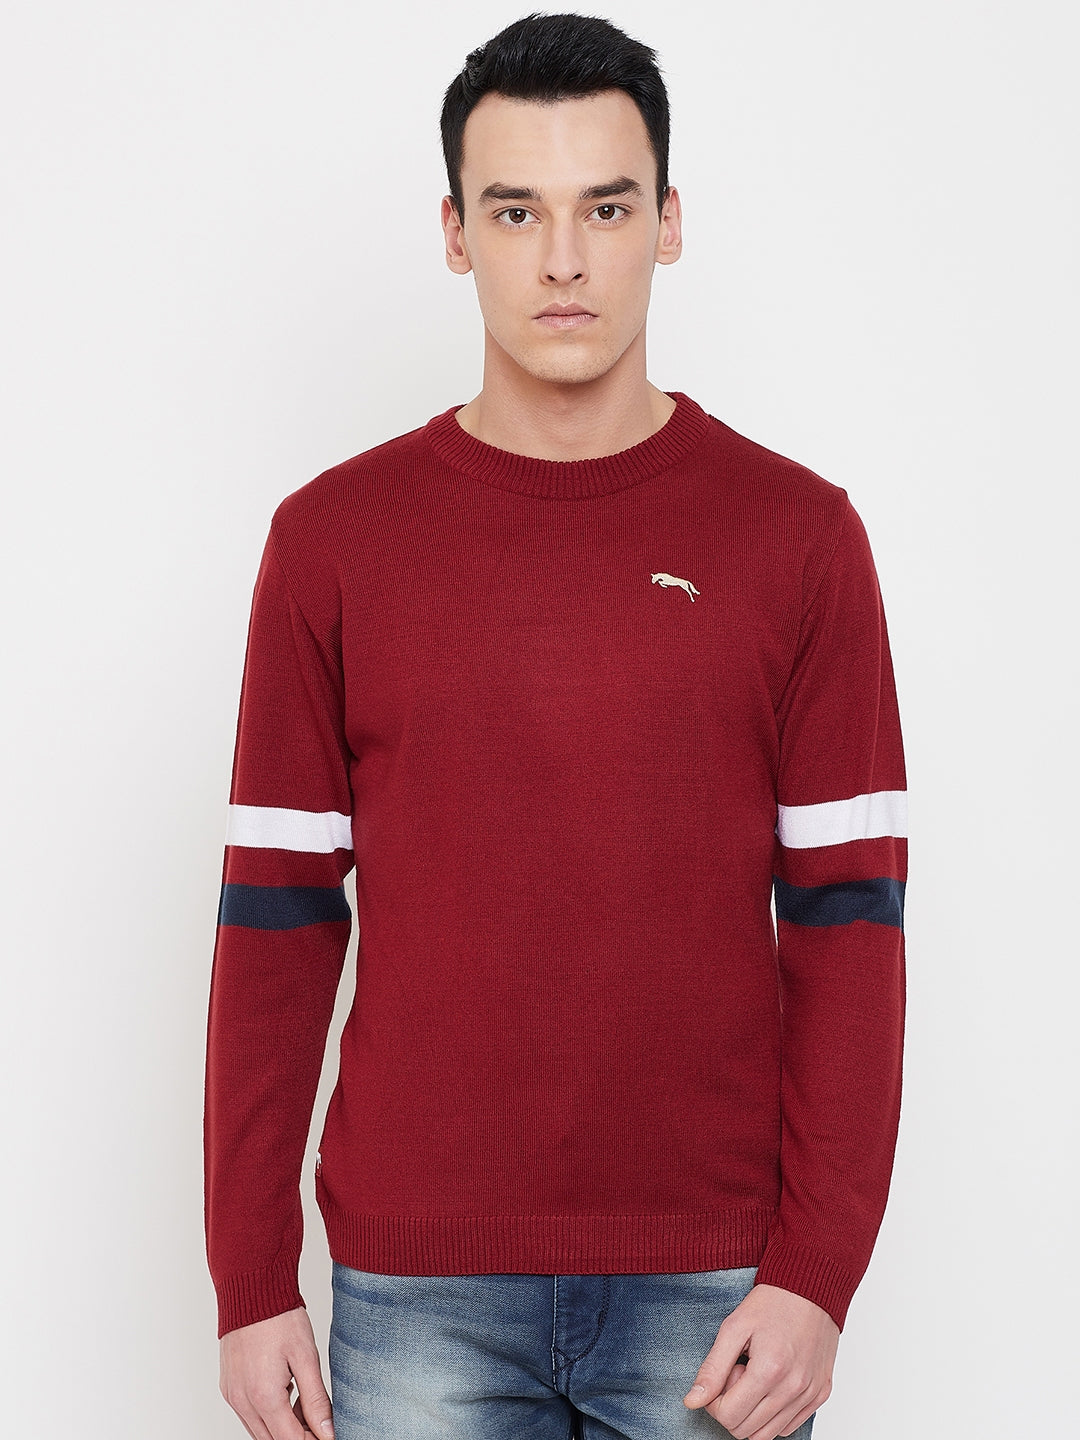 JUMP USA Men Red Solid Sweater - JUMP USA